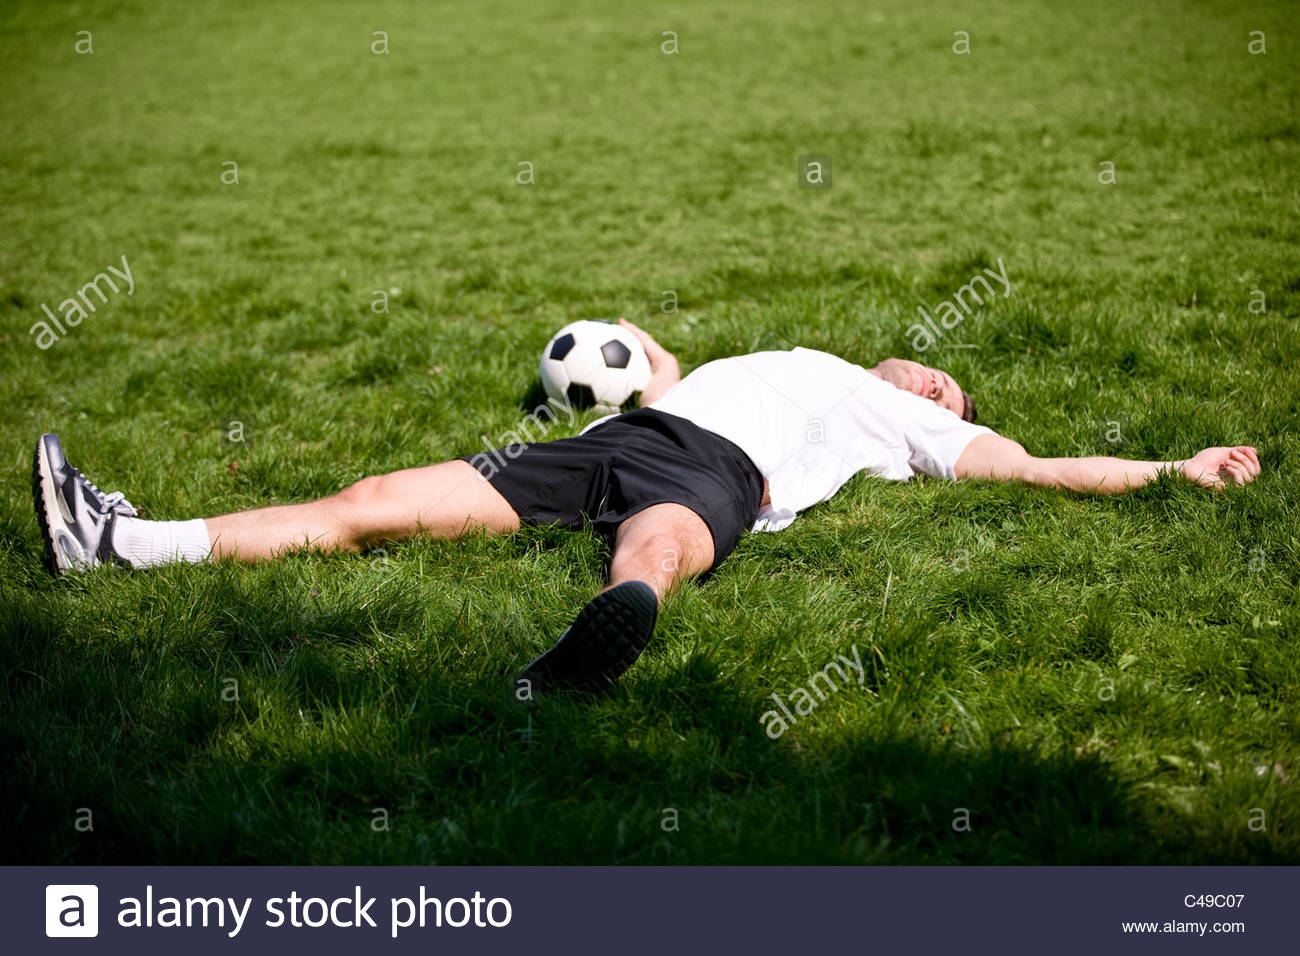 A young man lying on the grass, holding a football - Stock Image